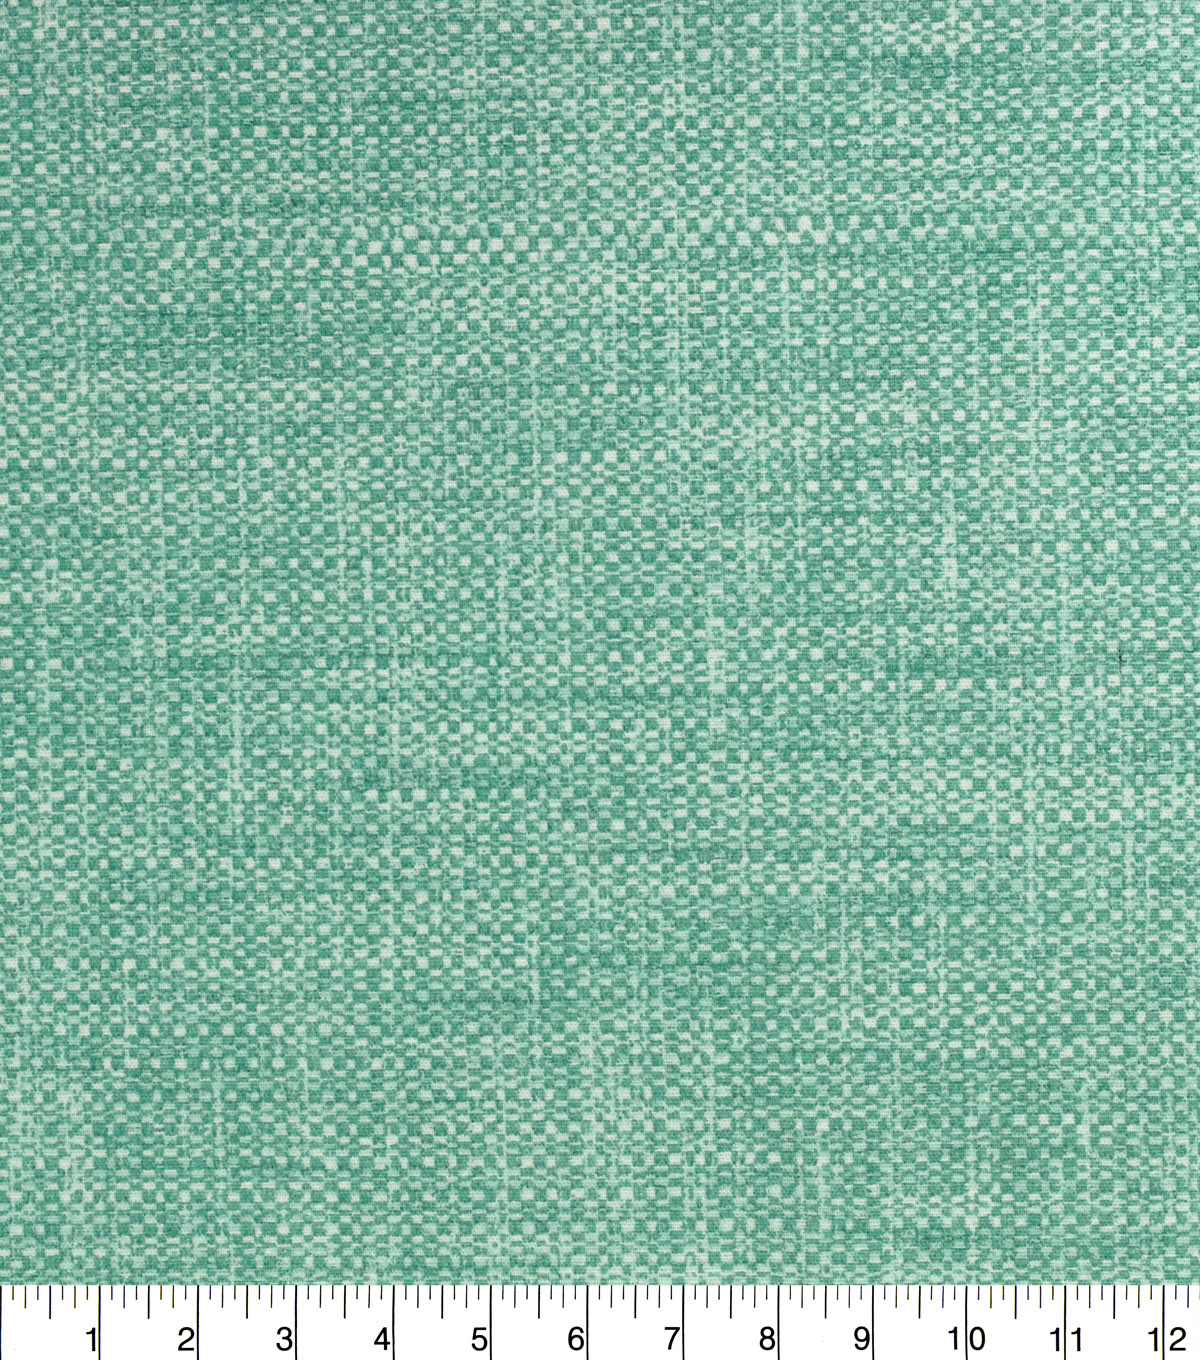 Home Essentials Lightweight Decor Fabric 45 \u0022-Aqua Remi